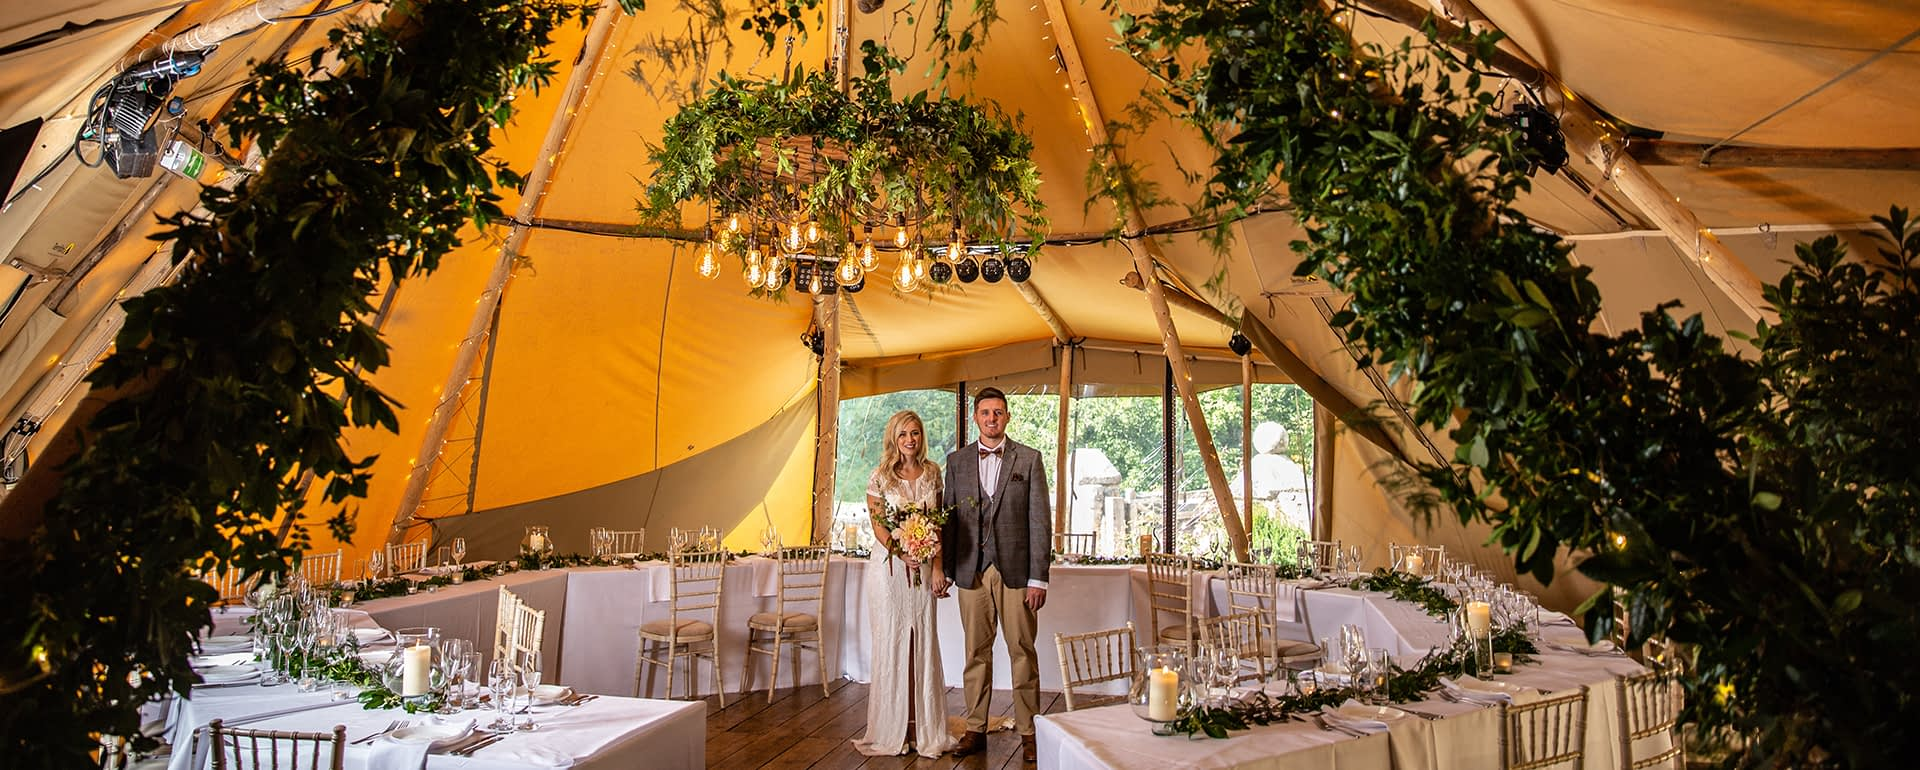 The Beauty of a Covid-Safe Wedding at Brinkburn